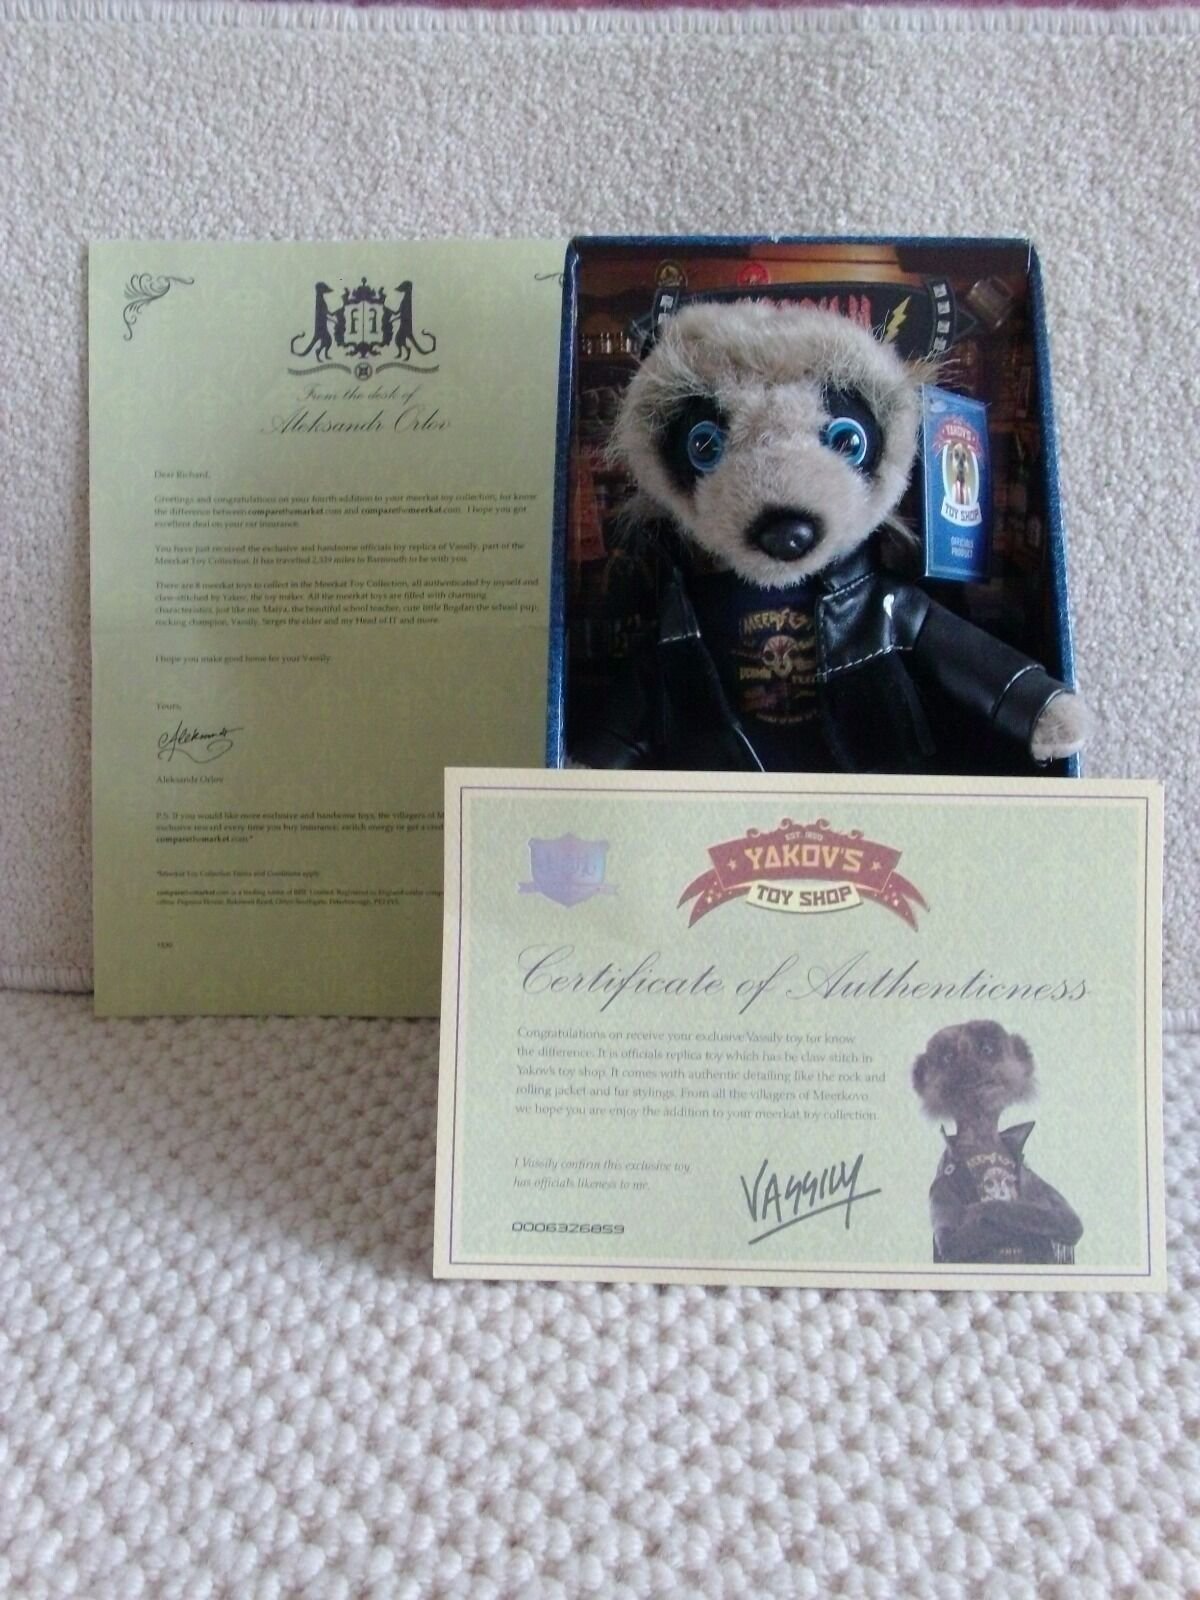 AN OFFICIAL SET OF COMPARE THE MARKET MEERKATS MEERKATS MEERKATS TOYS WITH CERTIFICATES AND BOXES b6752f